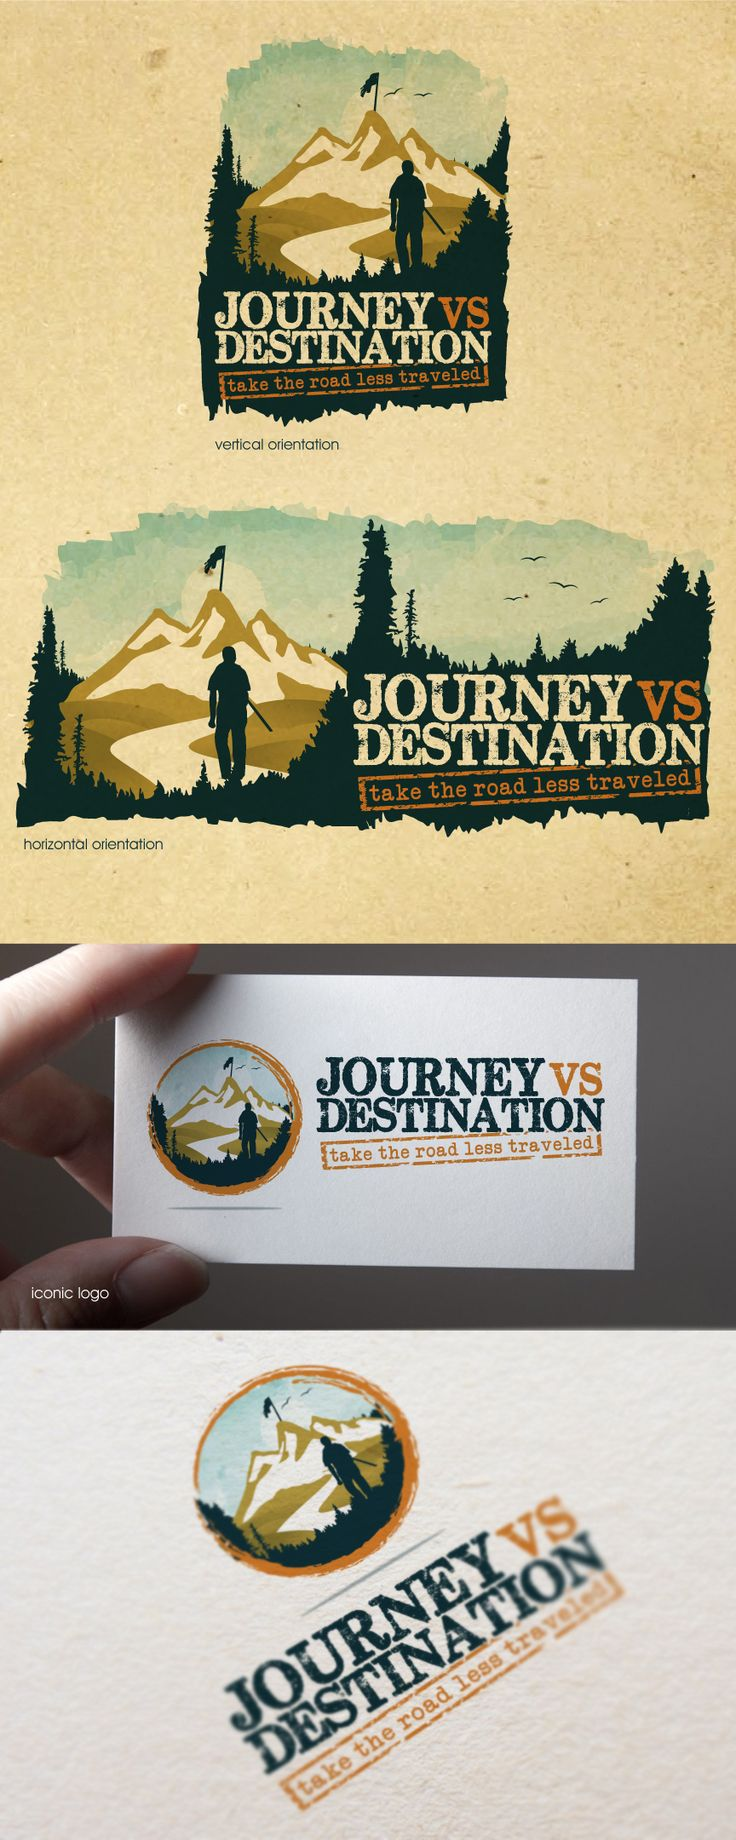 Make a difference! Create the next AWESOME logo for JourneyvsDestination.com! Logo design #127 by lynzee.artajo